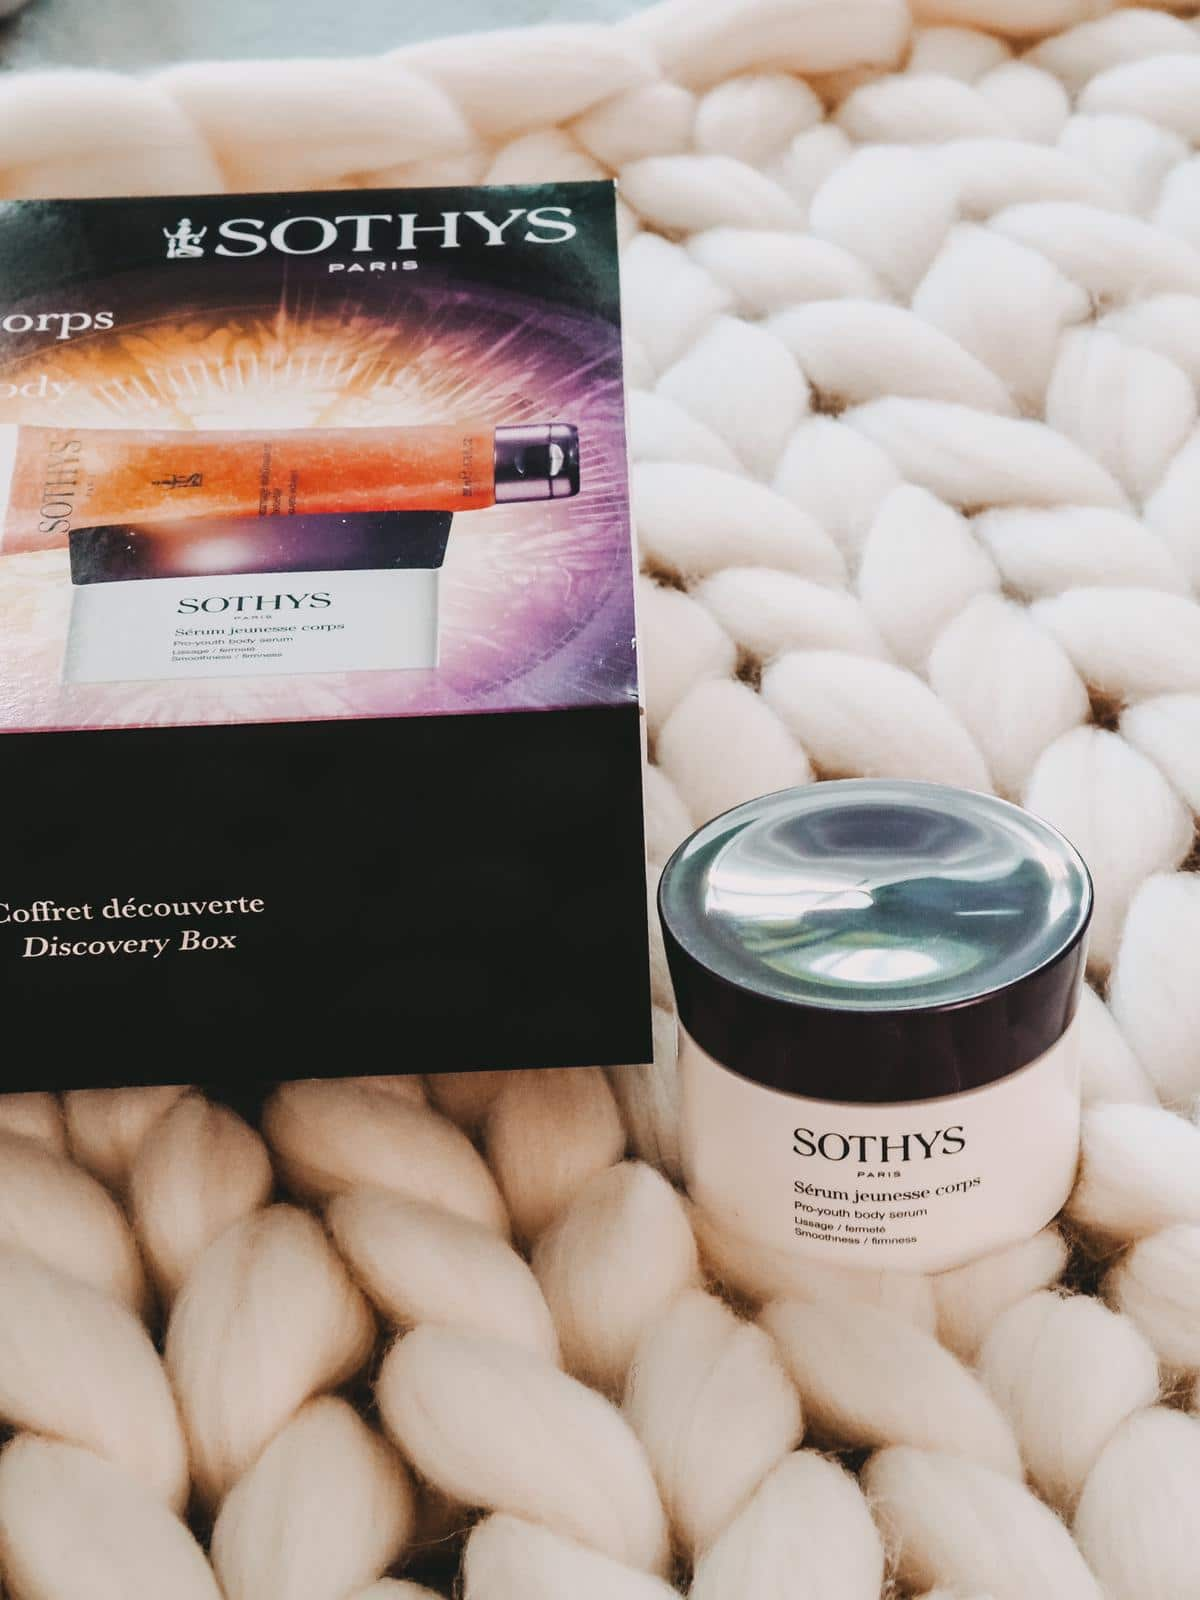 Sothys Pro-Youth Firming Body Treatment Serum.